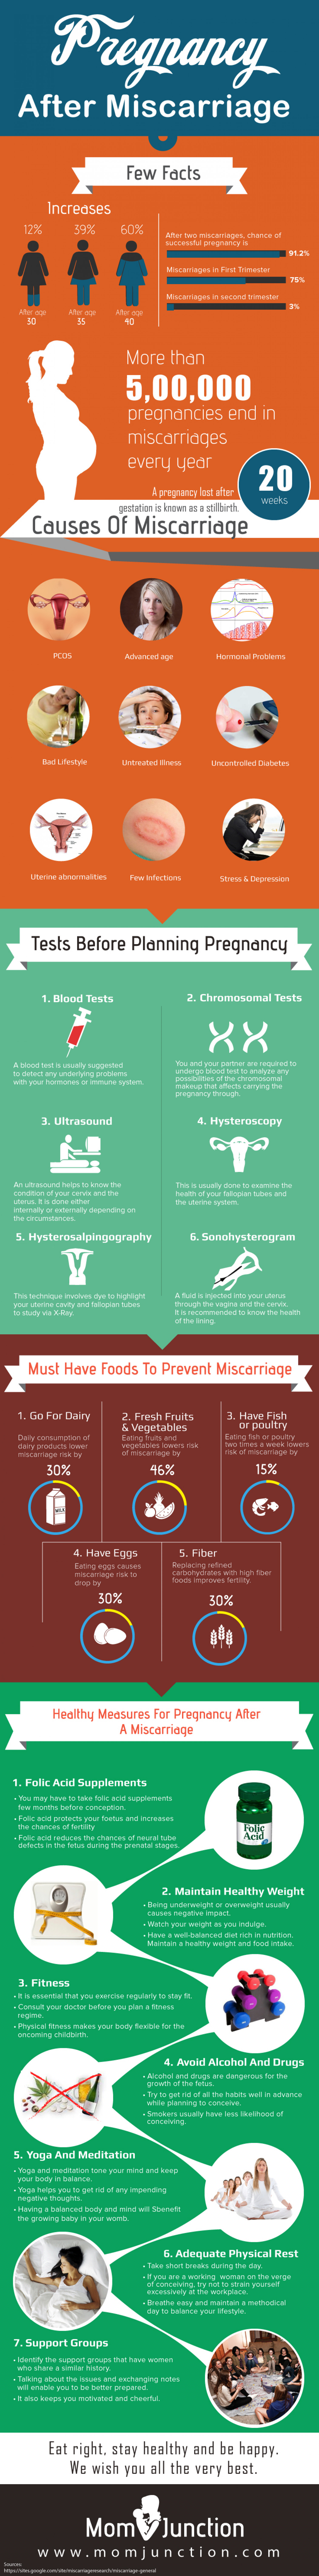 Getting Pregnant After Miscarriage: Things To Keep In Mind Infographic